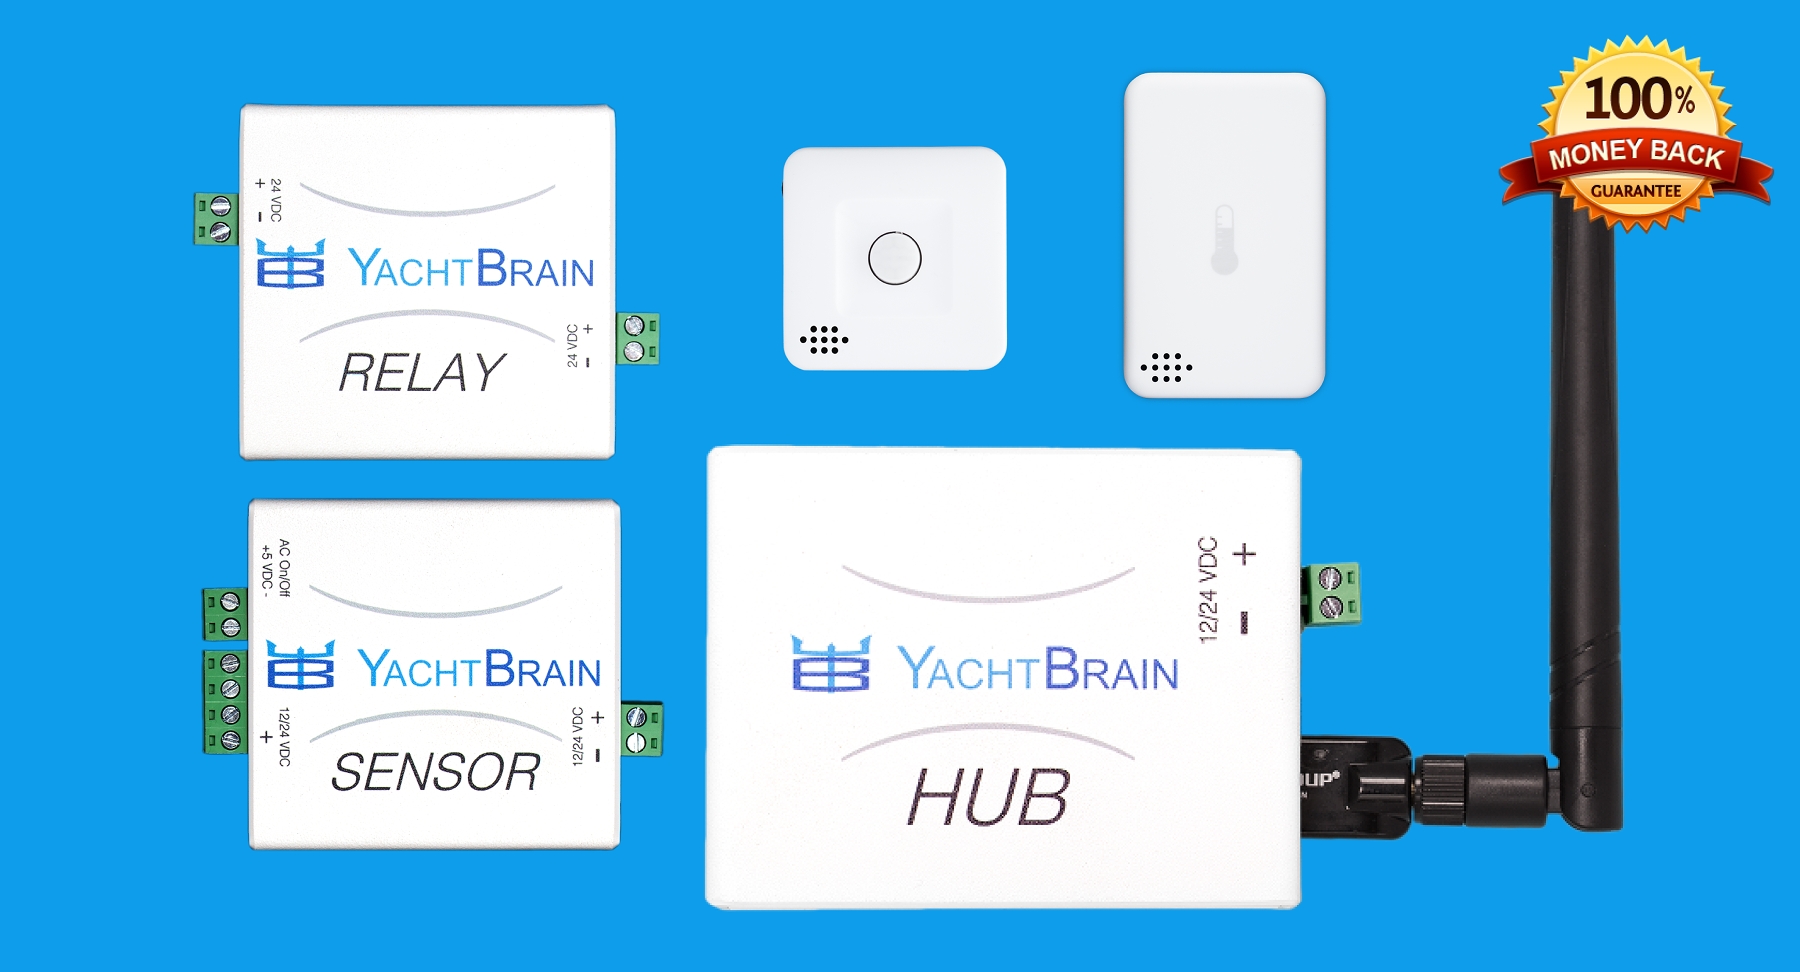 YachtBrain Hub + 4 Sensors or Relays Mix and Match